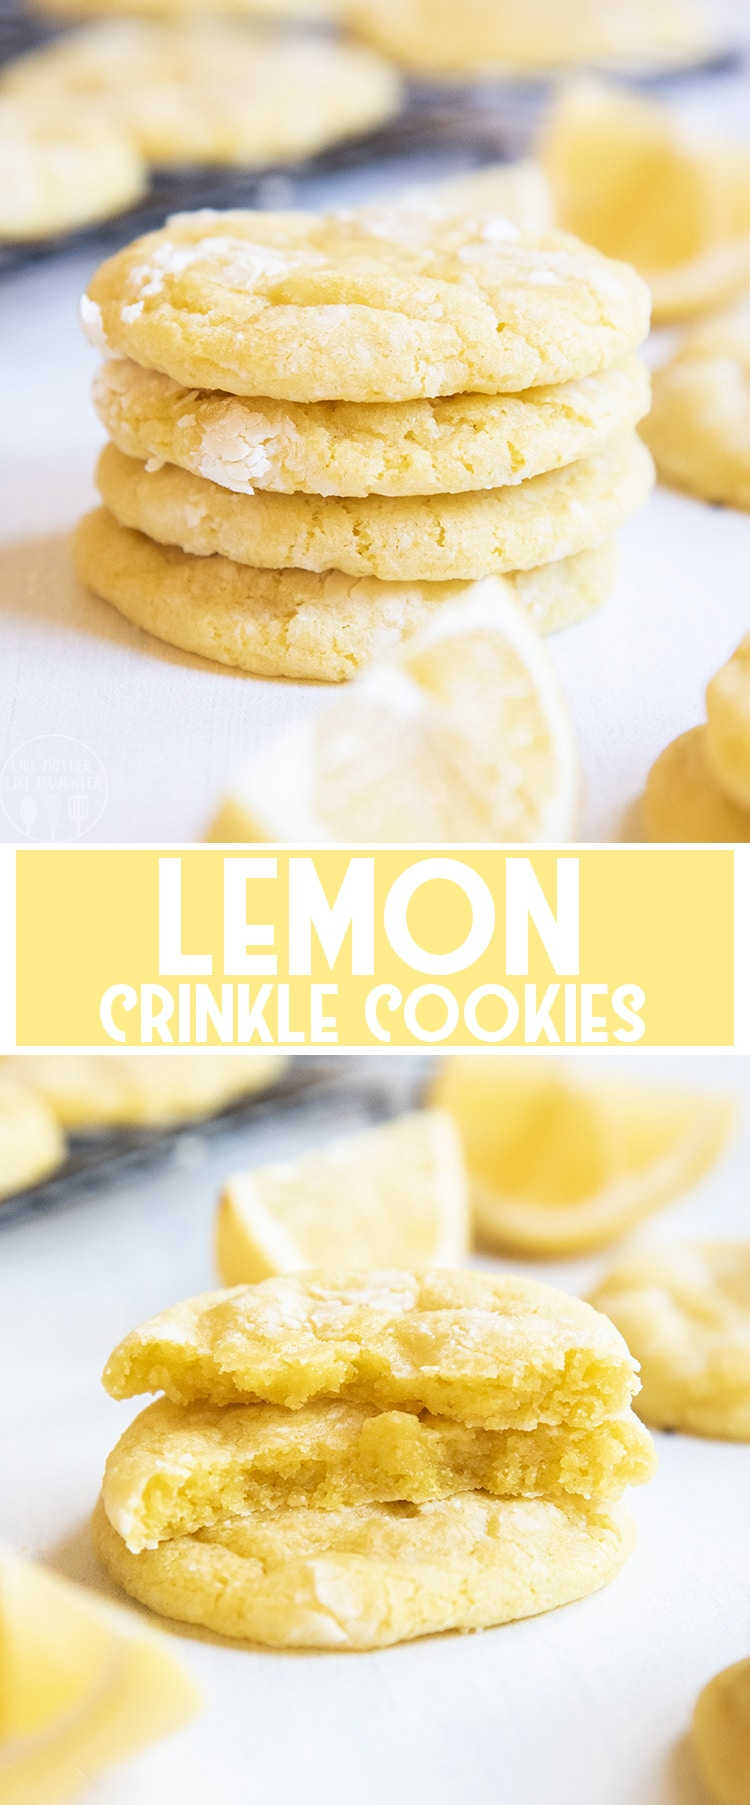 These lemon crinkle cookies are soft and chewy cookies, with the perfect tangy and sweet lemon flavor in every single bite!